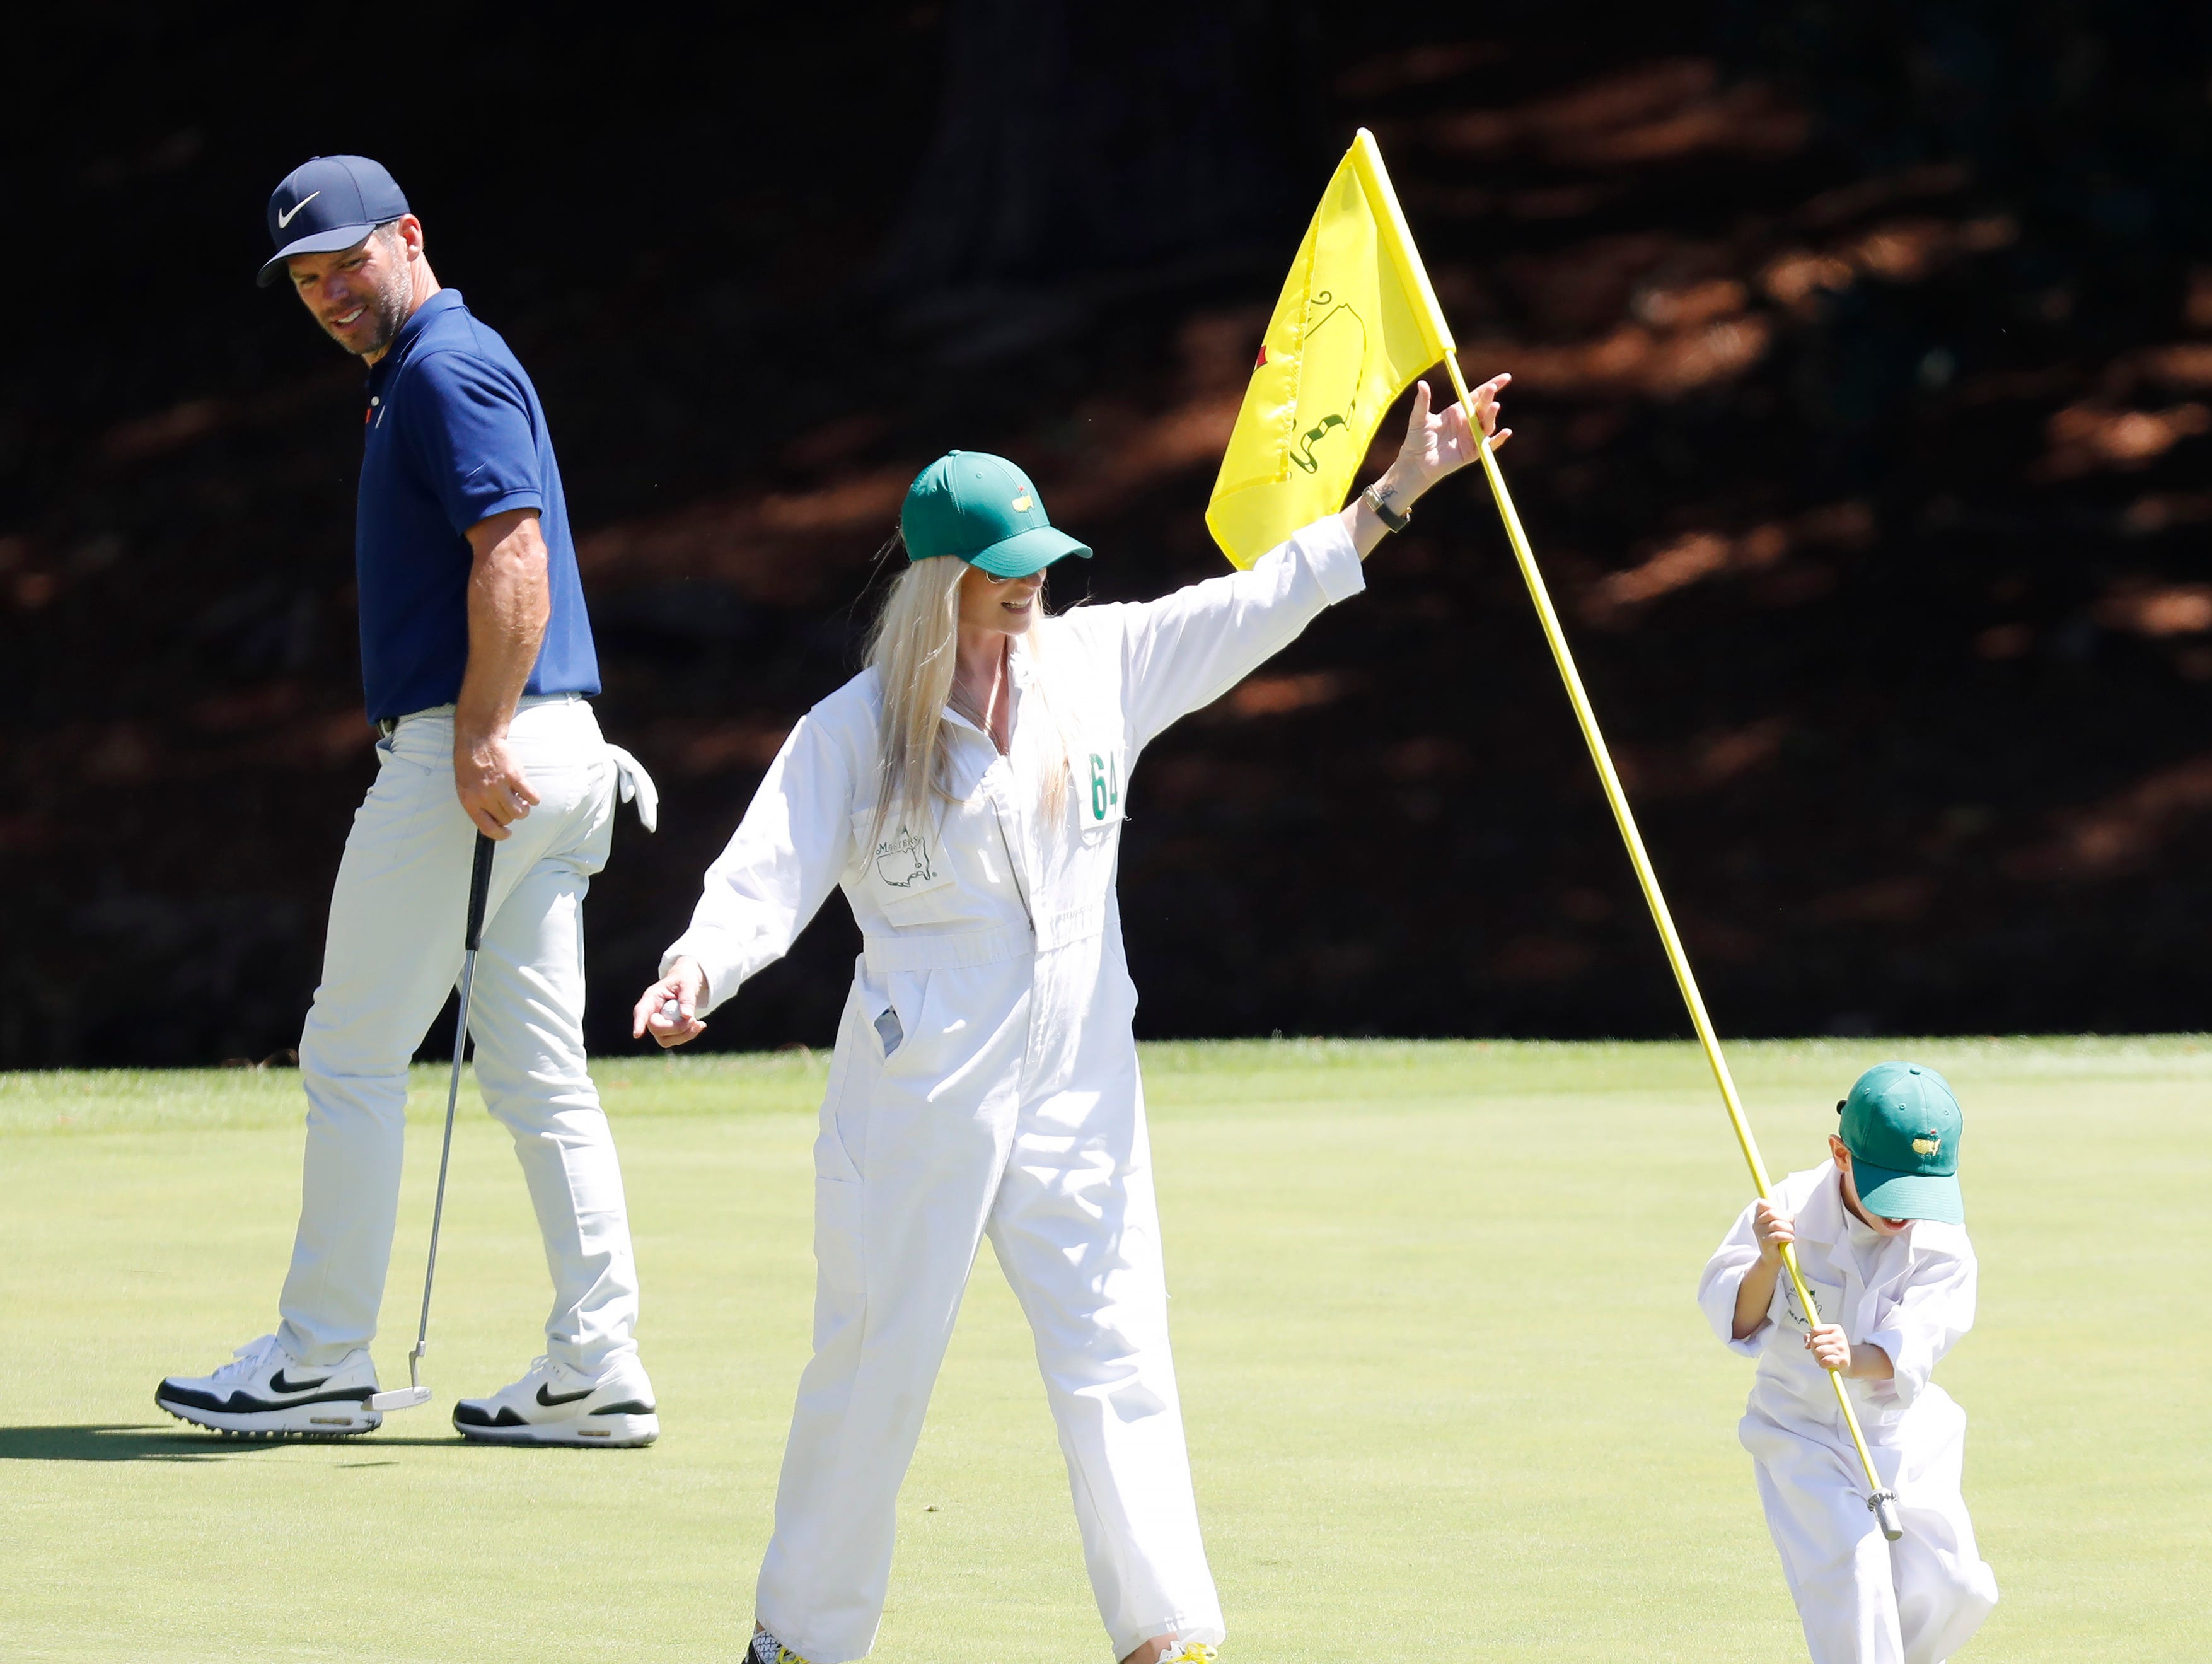 Paul Casey watches as his wife Pollyanna helps their son Lex put the pin flag back on the eighth hole.